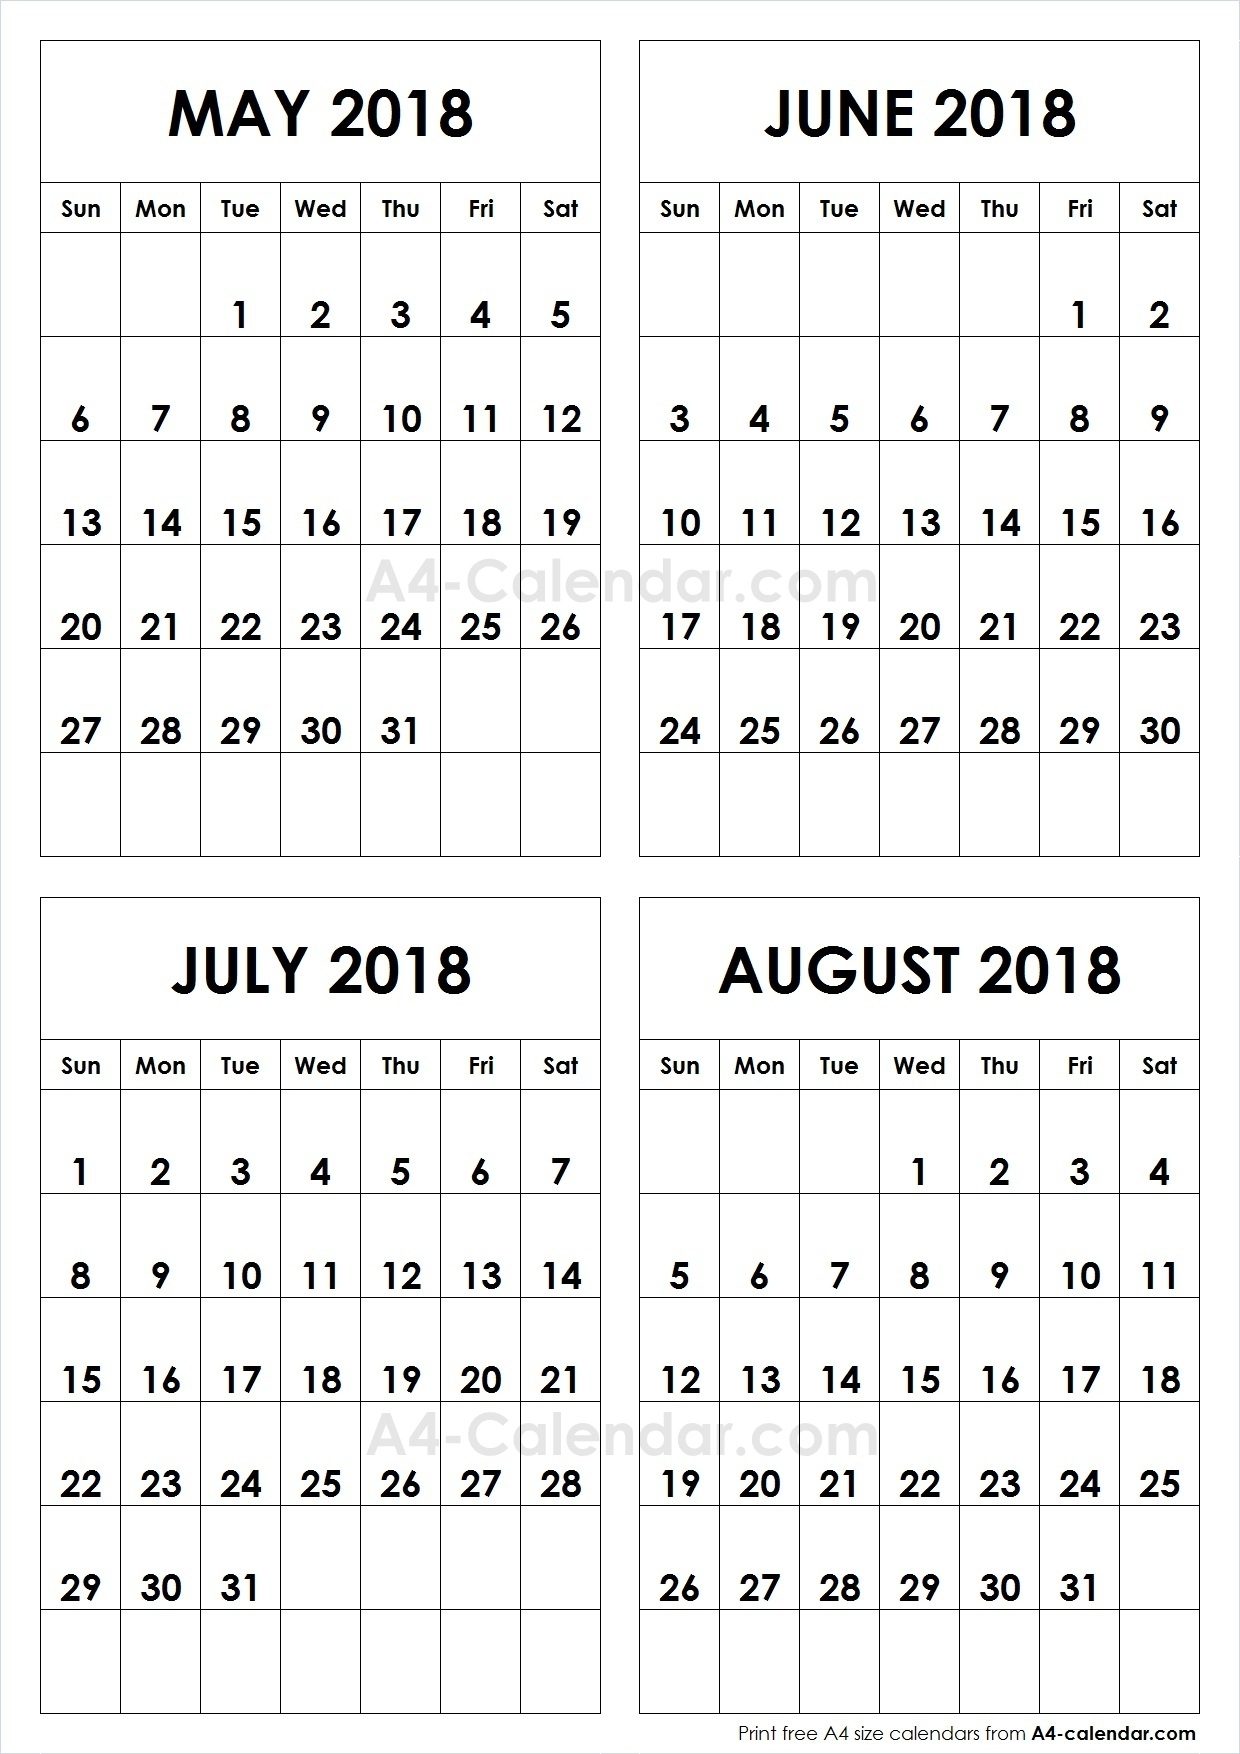 May June July August 2018 A4 Calendar | 4 Month Calendar Template throughout May June July August Calendar